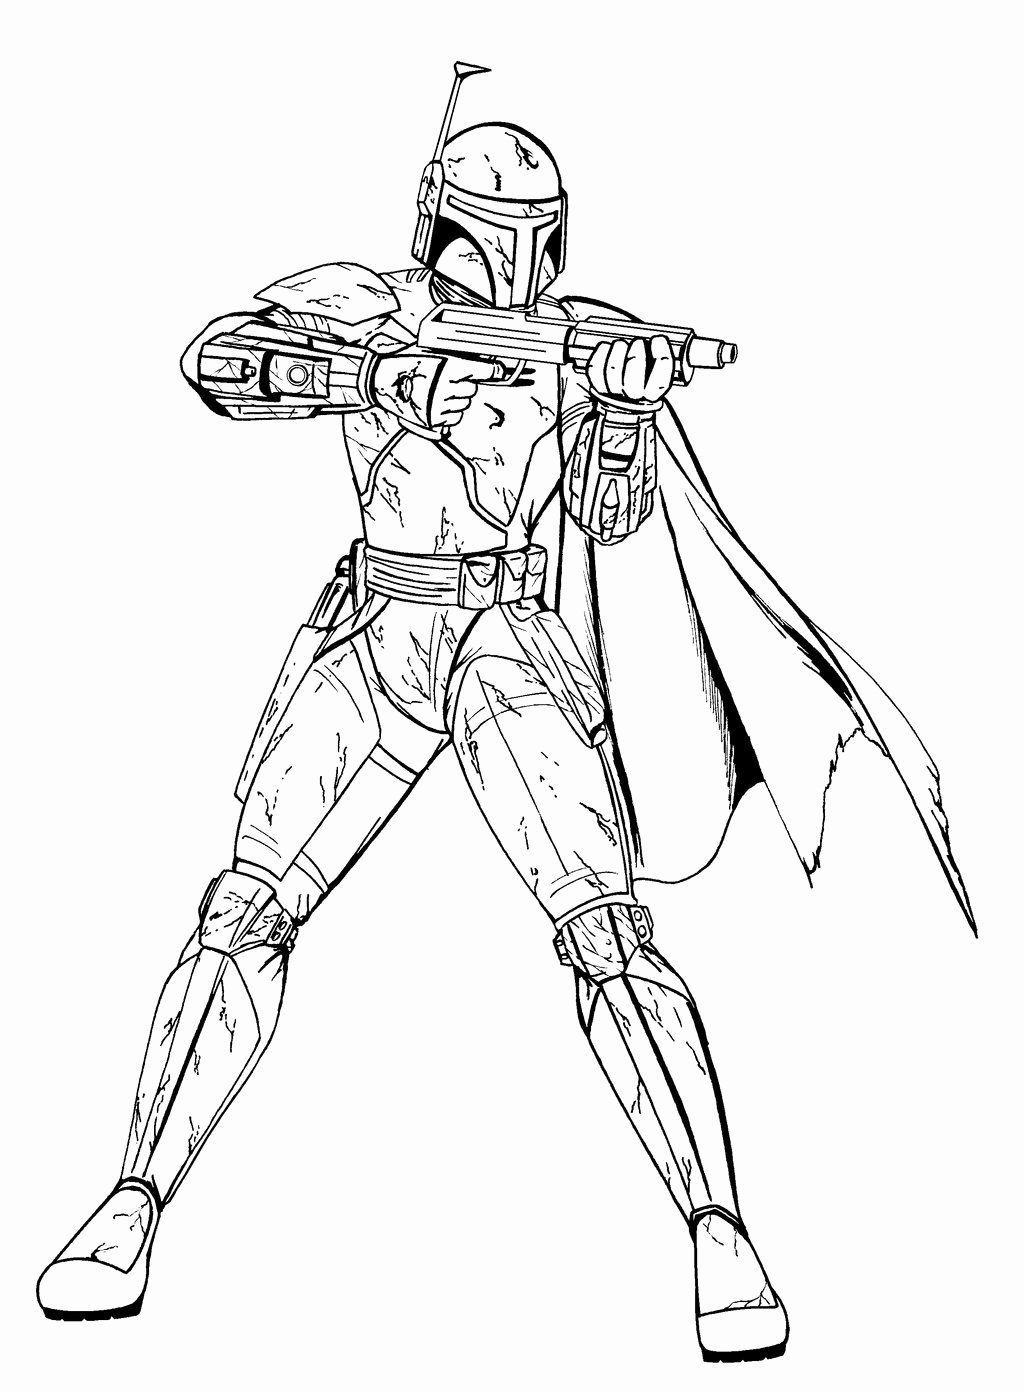 Boba Fett Coloring Page Awesome Star Wars Coloring Pages 2018 Dr Odd Star Wars Coloring Sheet Star Wars Colors Star Wars Coloring Book